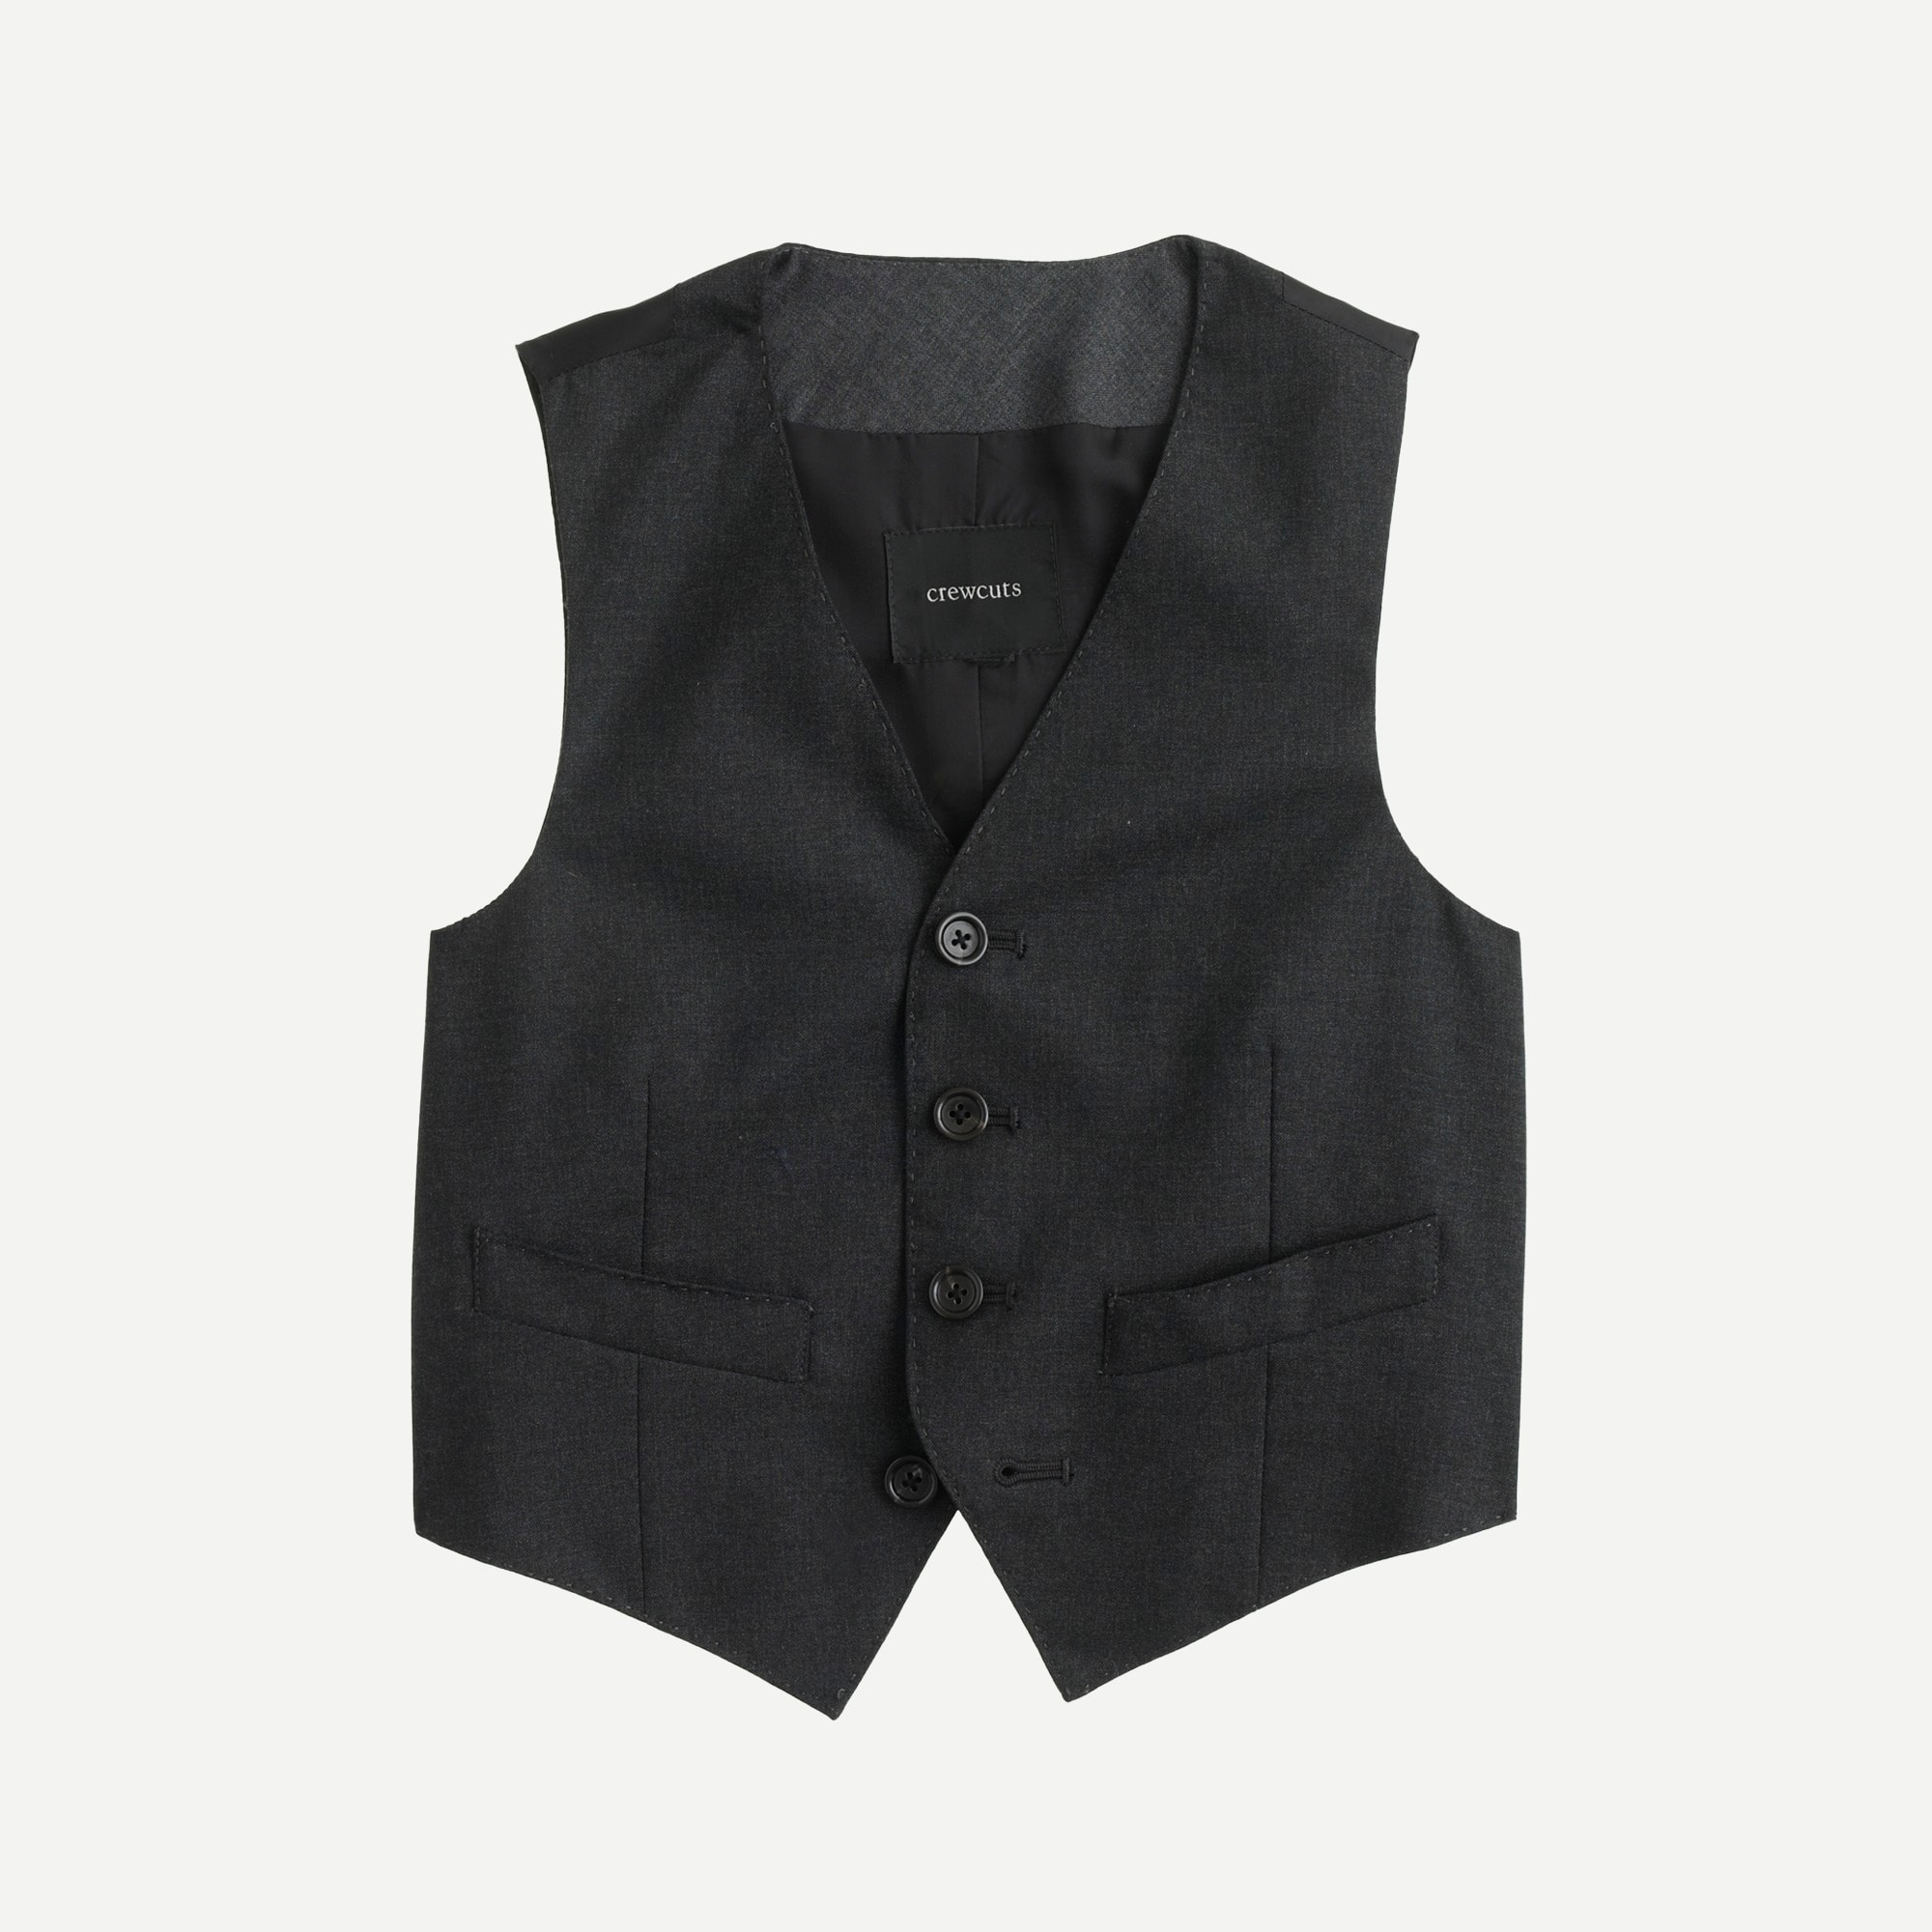 boys Boys' Ludlow suit vest in Italian wool